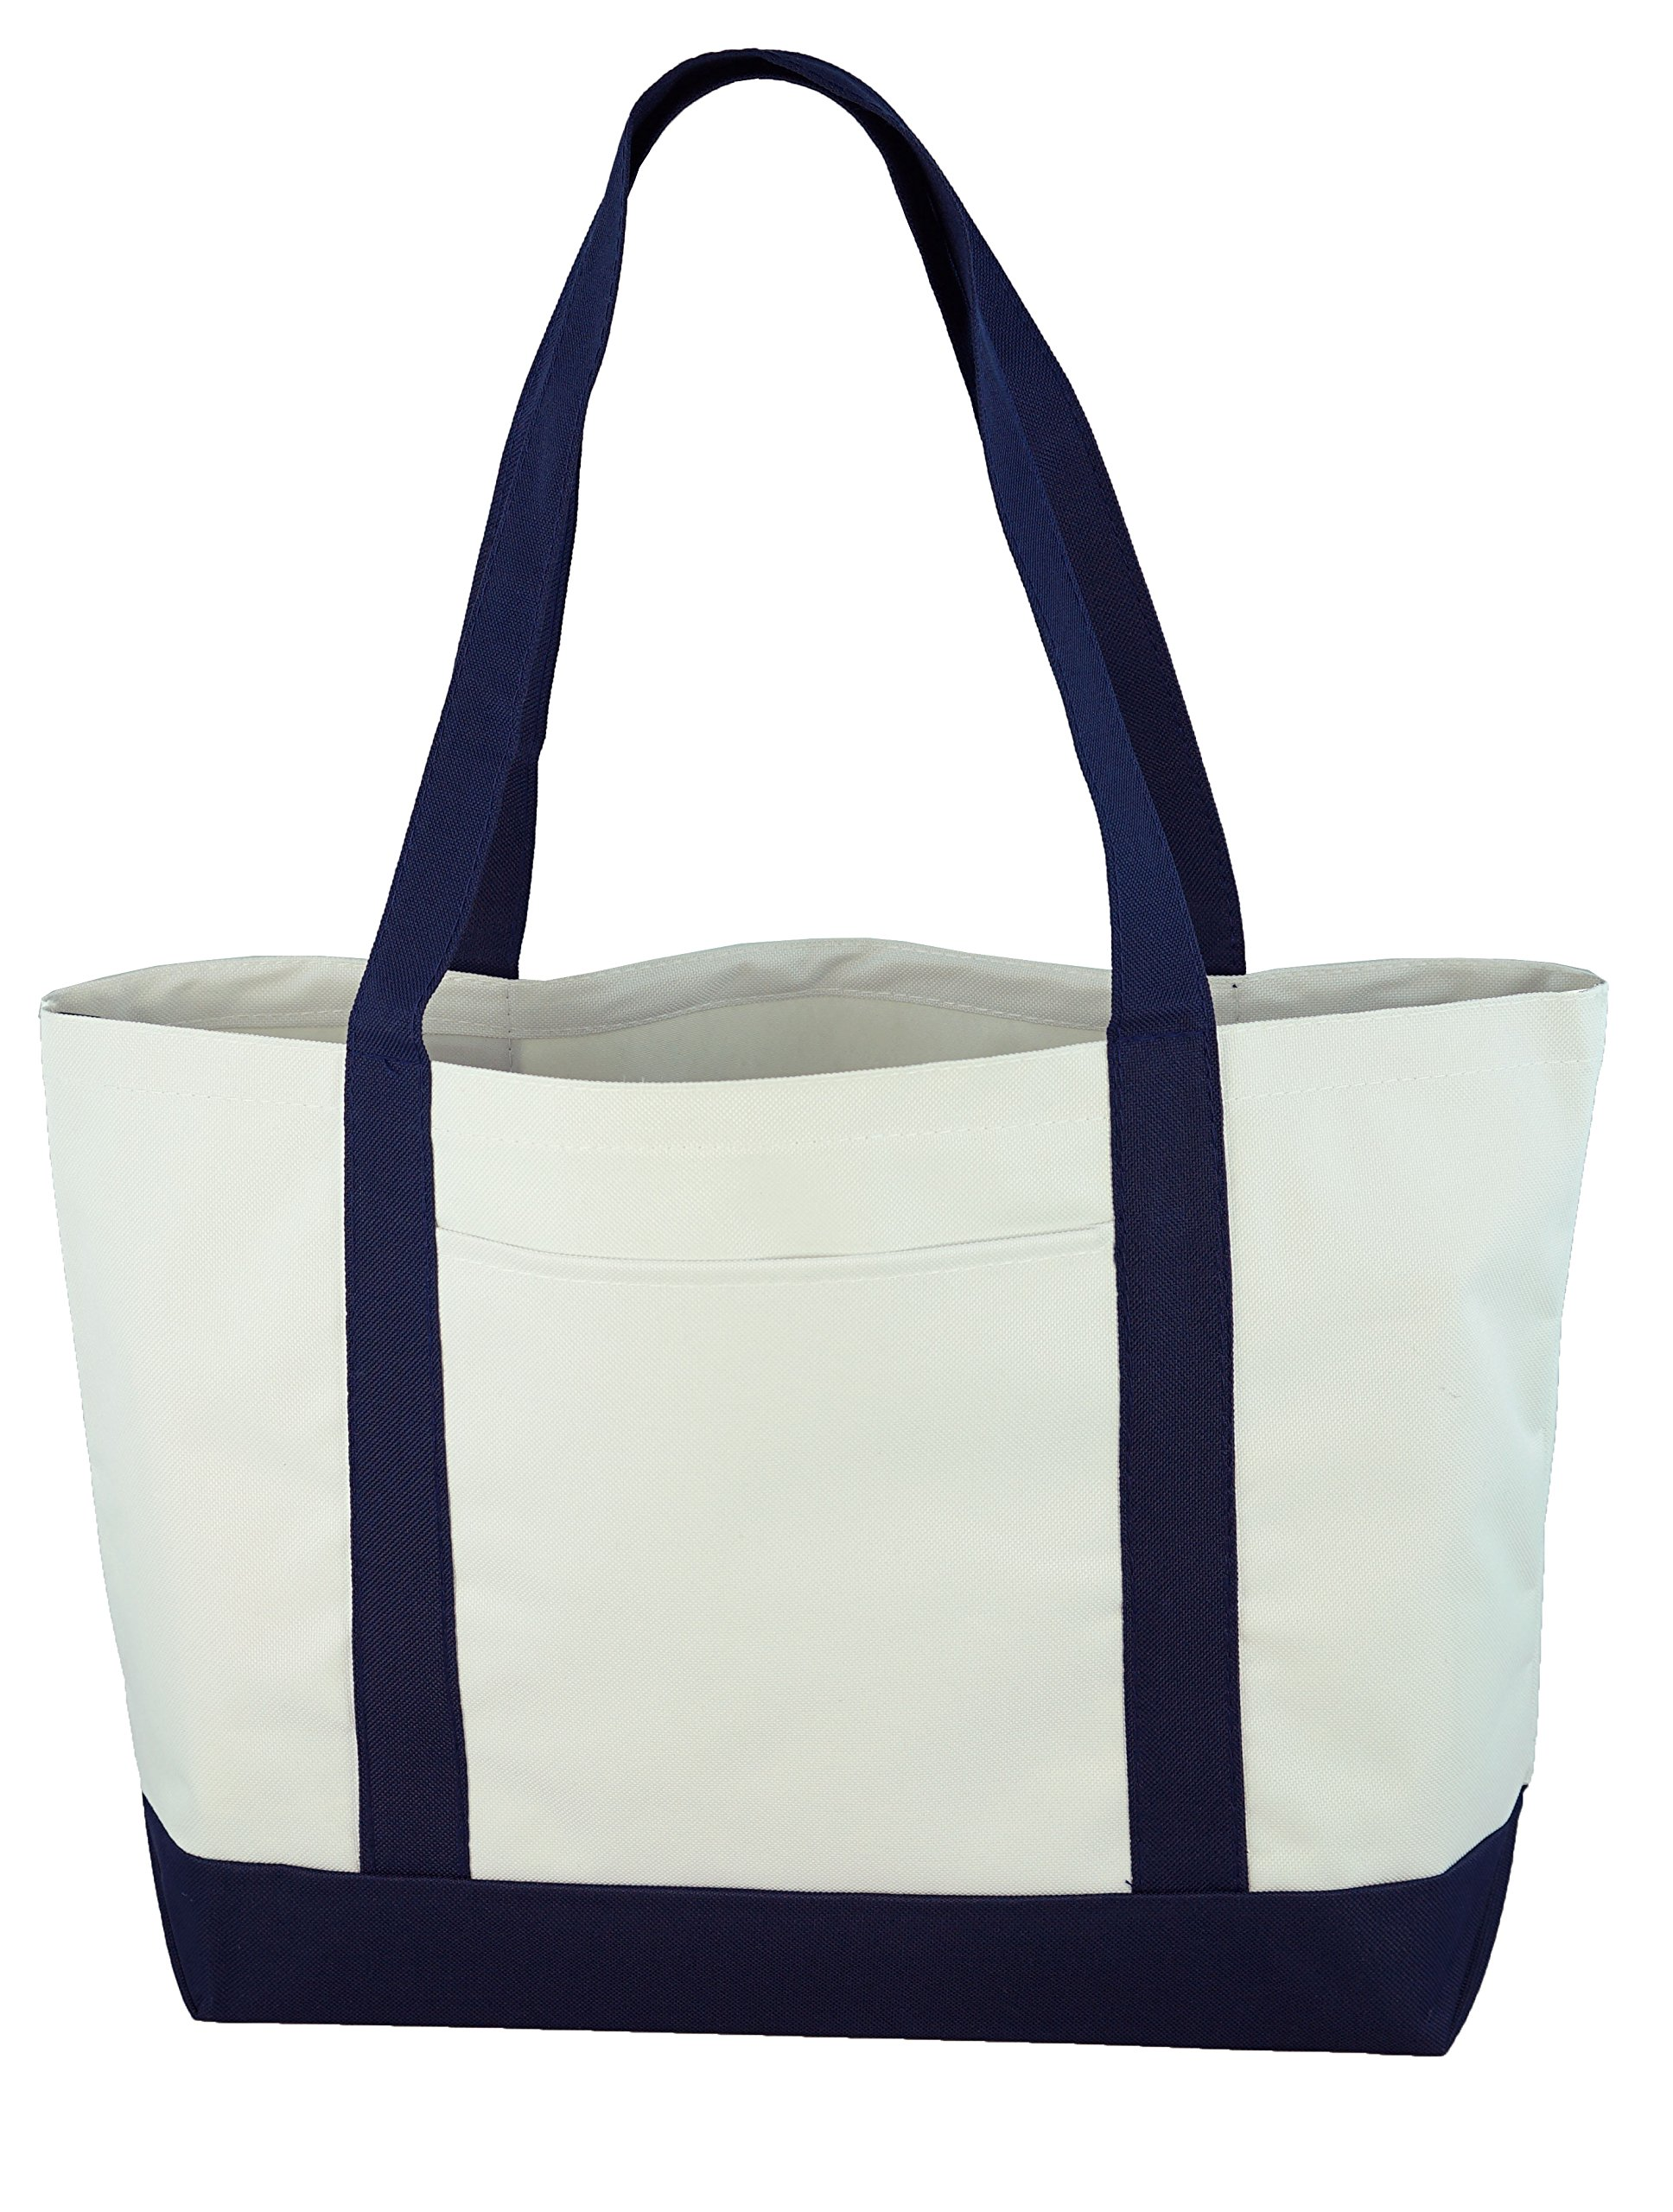 Daily Tote (White/Navy) by Ensign Peak (Image #2)